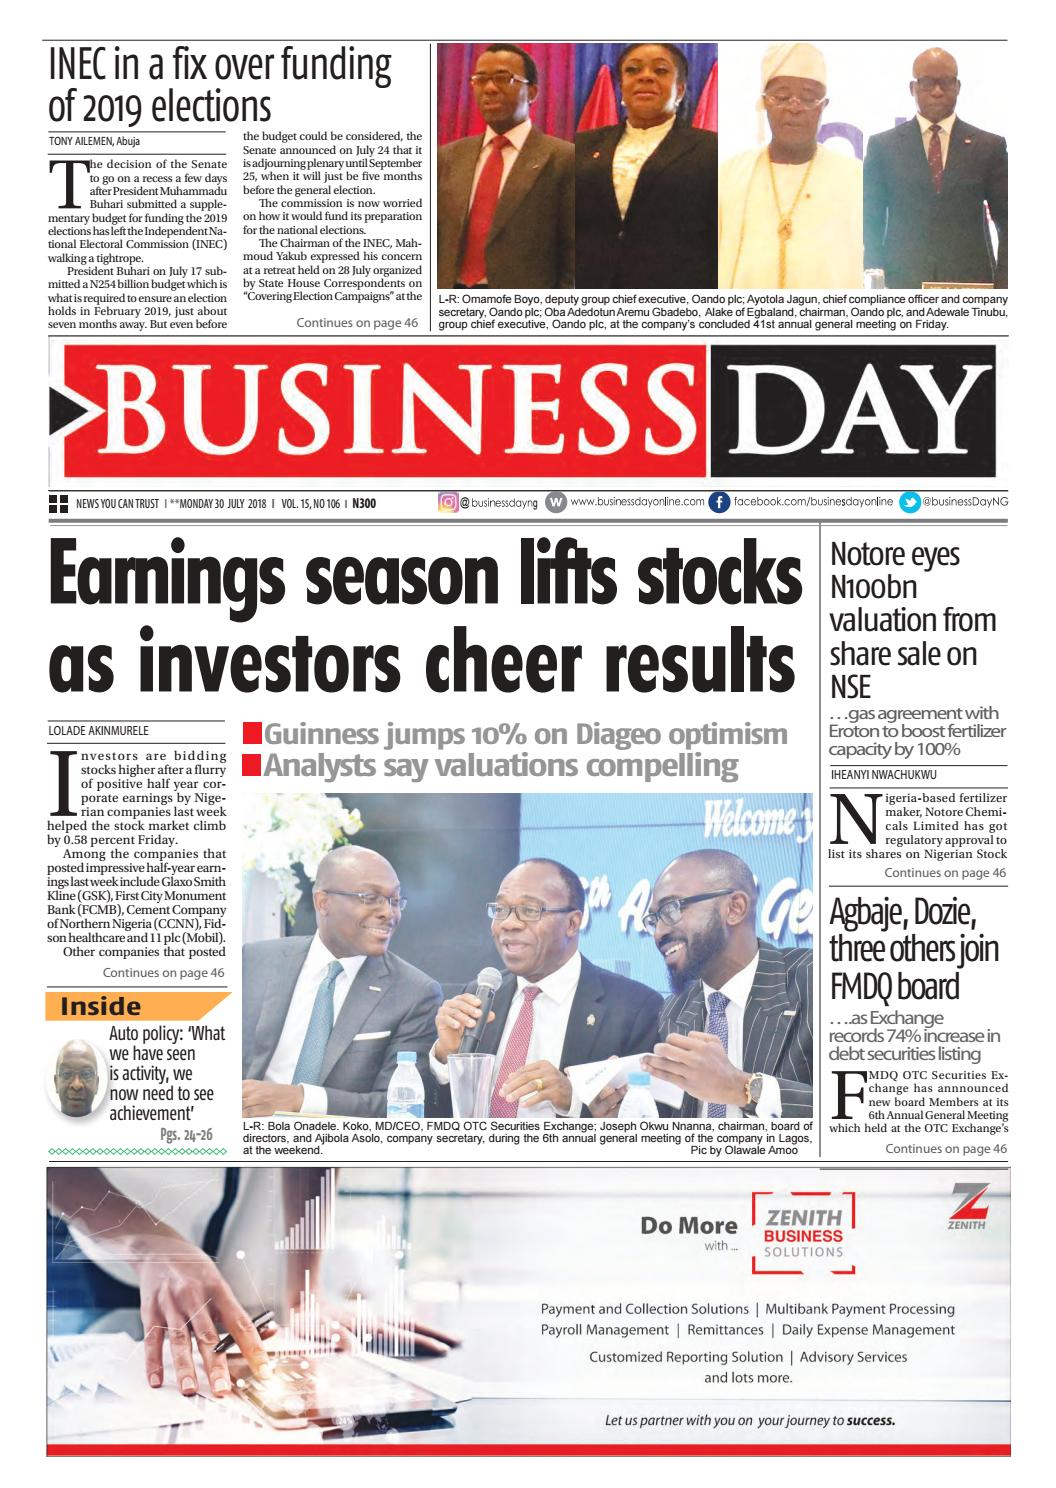 BusinessDay Jul 30 2018 by BusinessDay - issuu